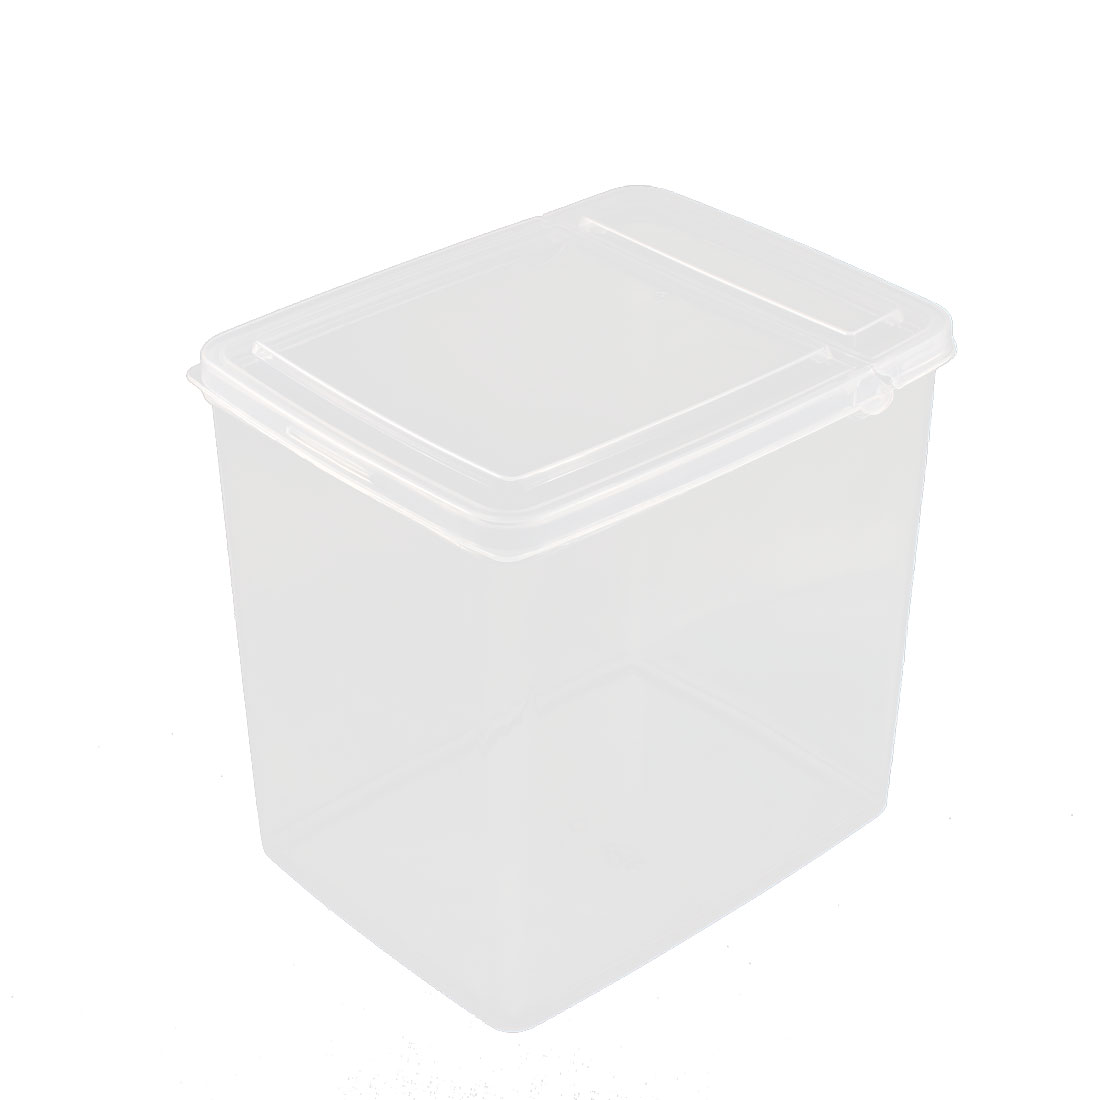 Home Plastic Food Storage Box Container 165mmx125mmx160mm 2.6L Clear